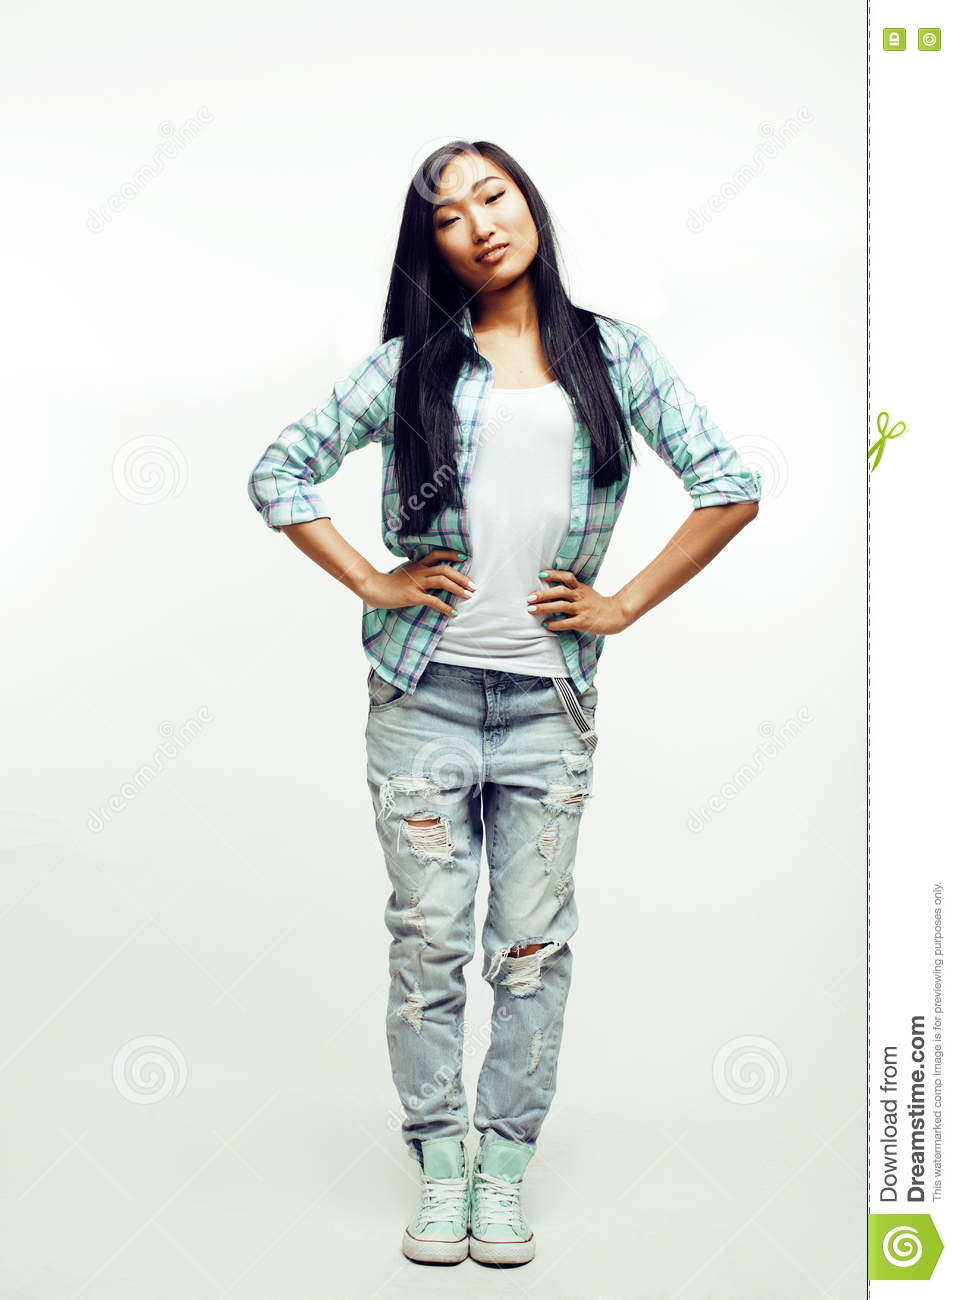 posing background pretty emotional asian cheerful young woman lifestyle concept preview lady happy